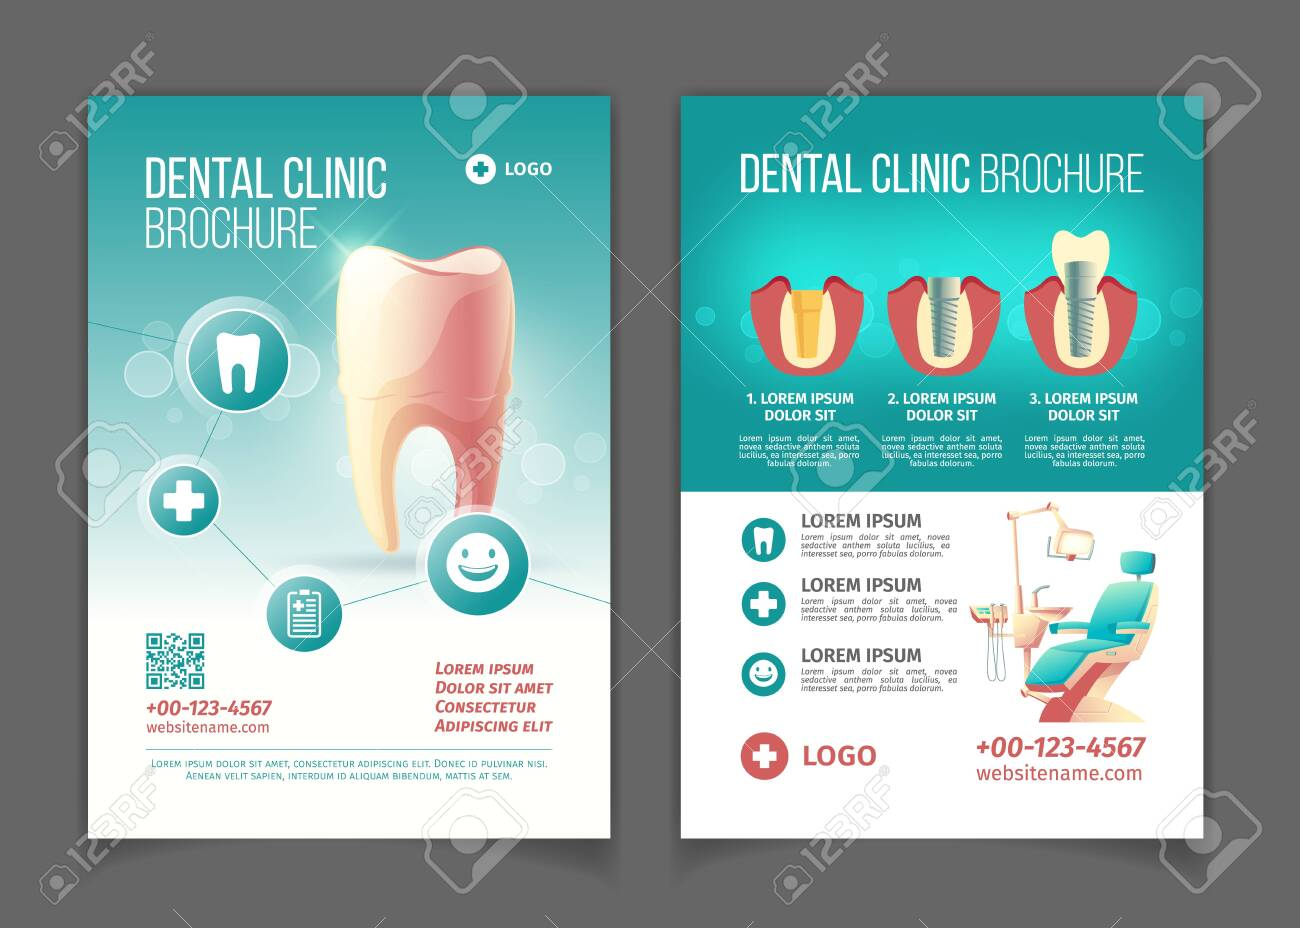 Dental clinic advertising brochure, poster cartoon vector pages template. Comfortable stomatology chair with lamp, healthy tooth, modern dental implants and crowns technology infographics illustration - 126742752